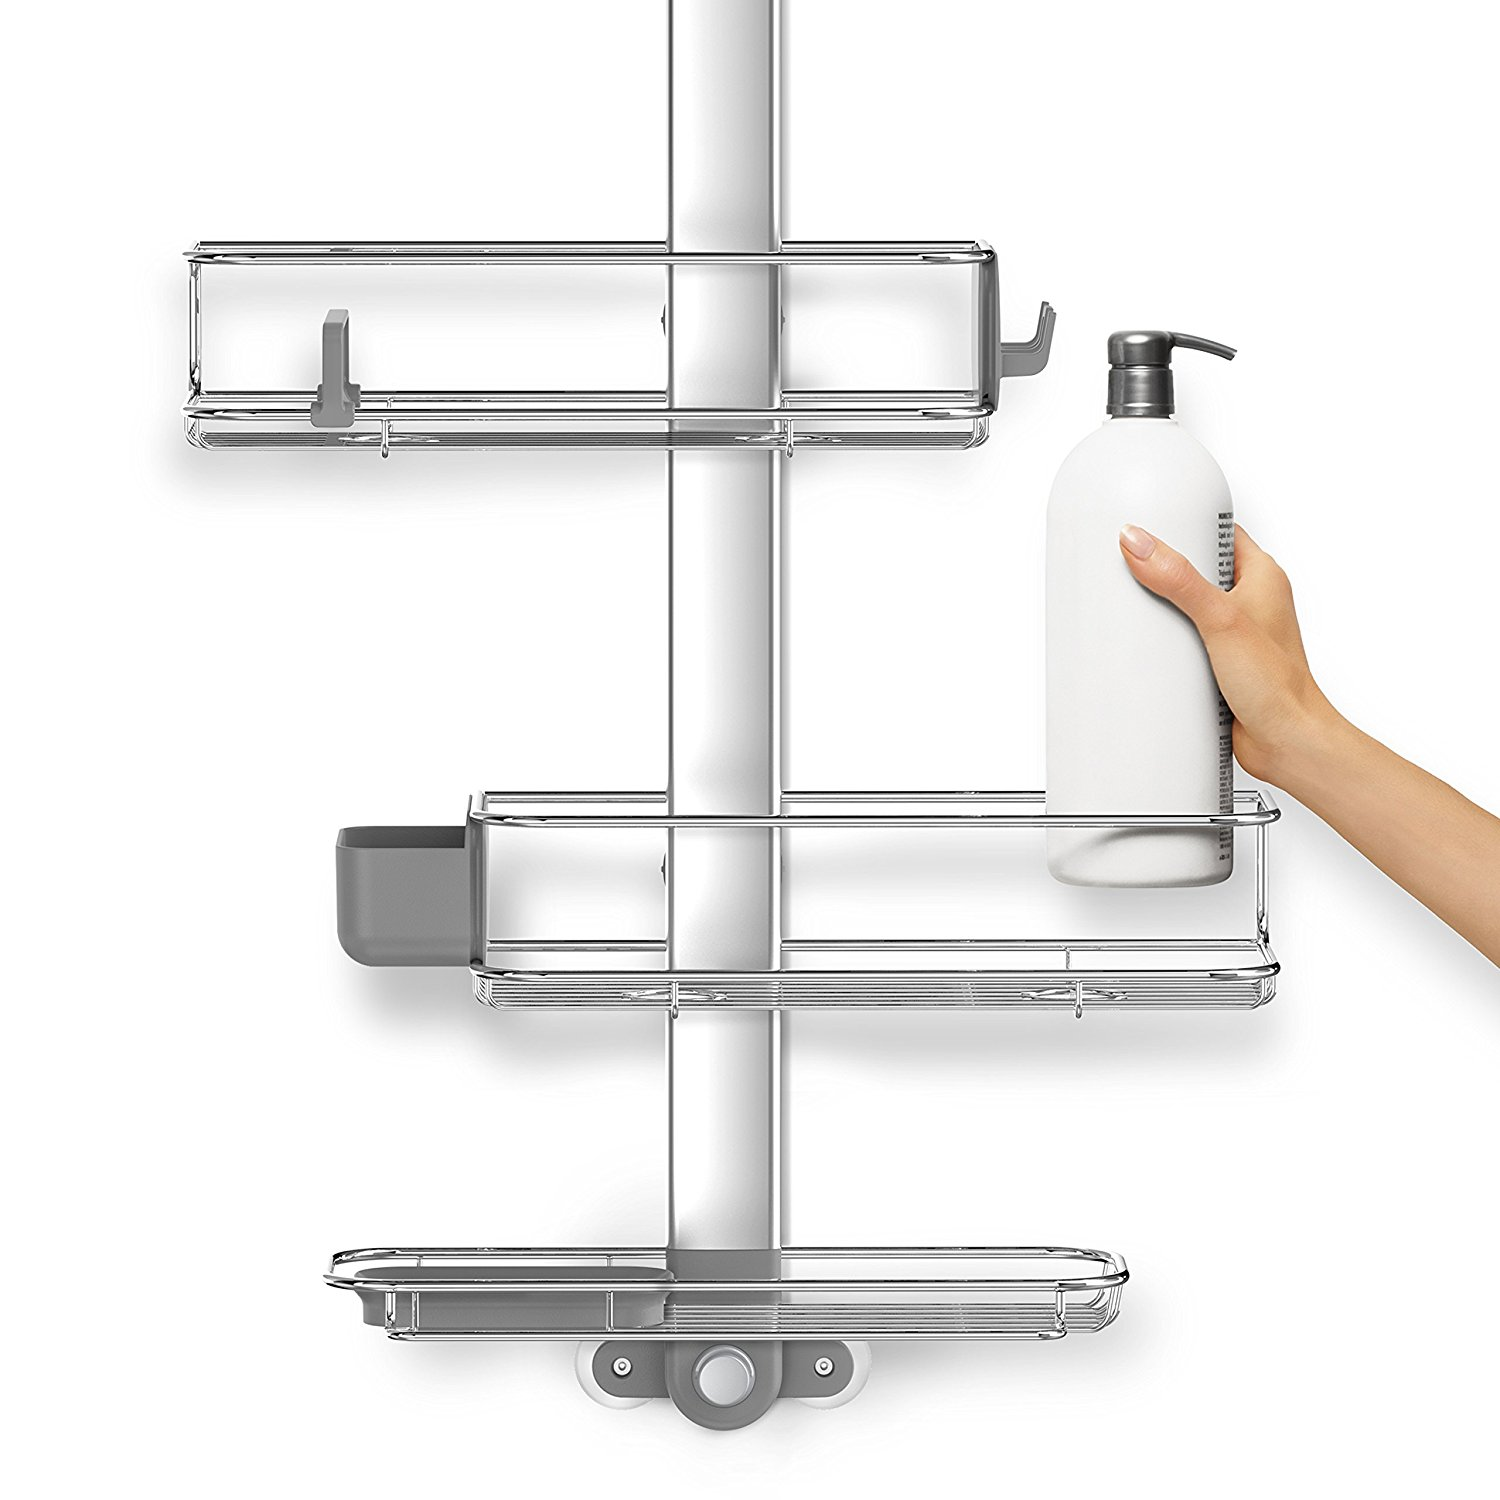 Simplehuman Stainless Steel Tension Shower Caddy | Simplehuman Shower Caddy Tension | Simplehuman Shower Caddy